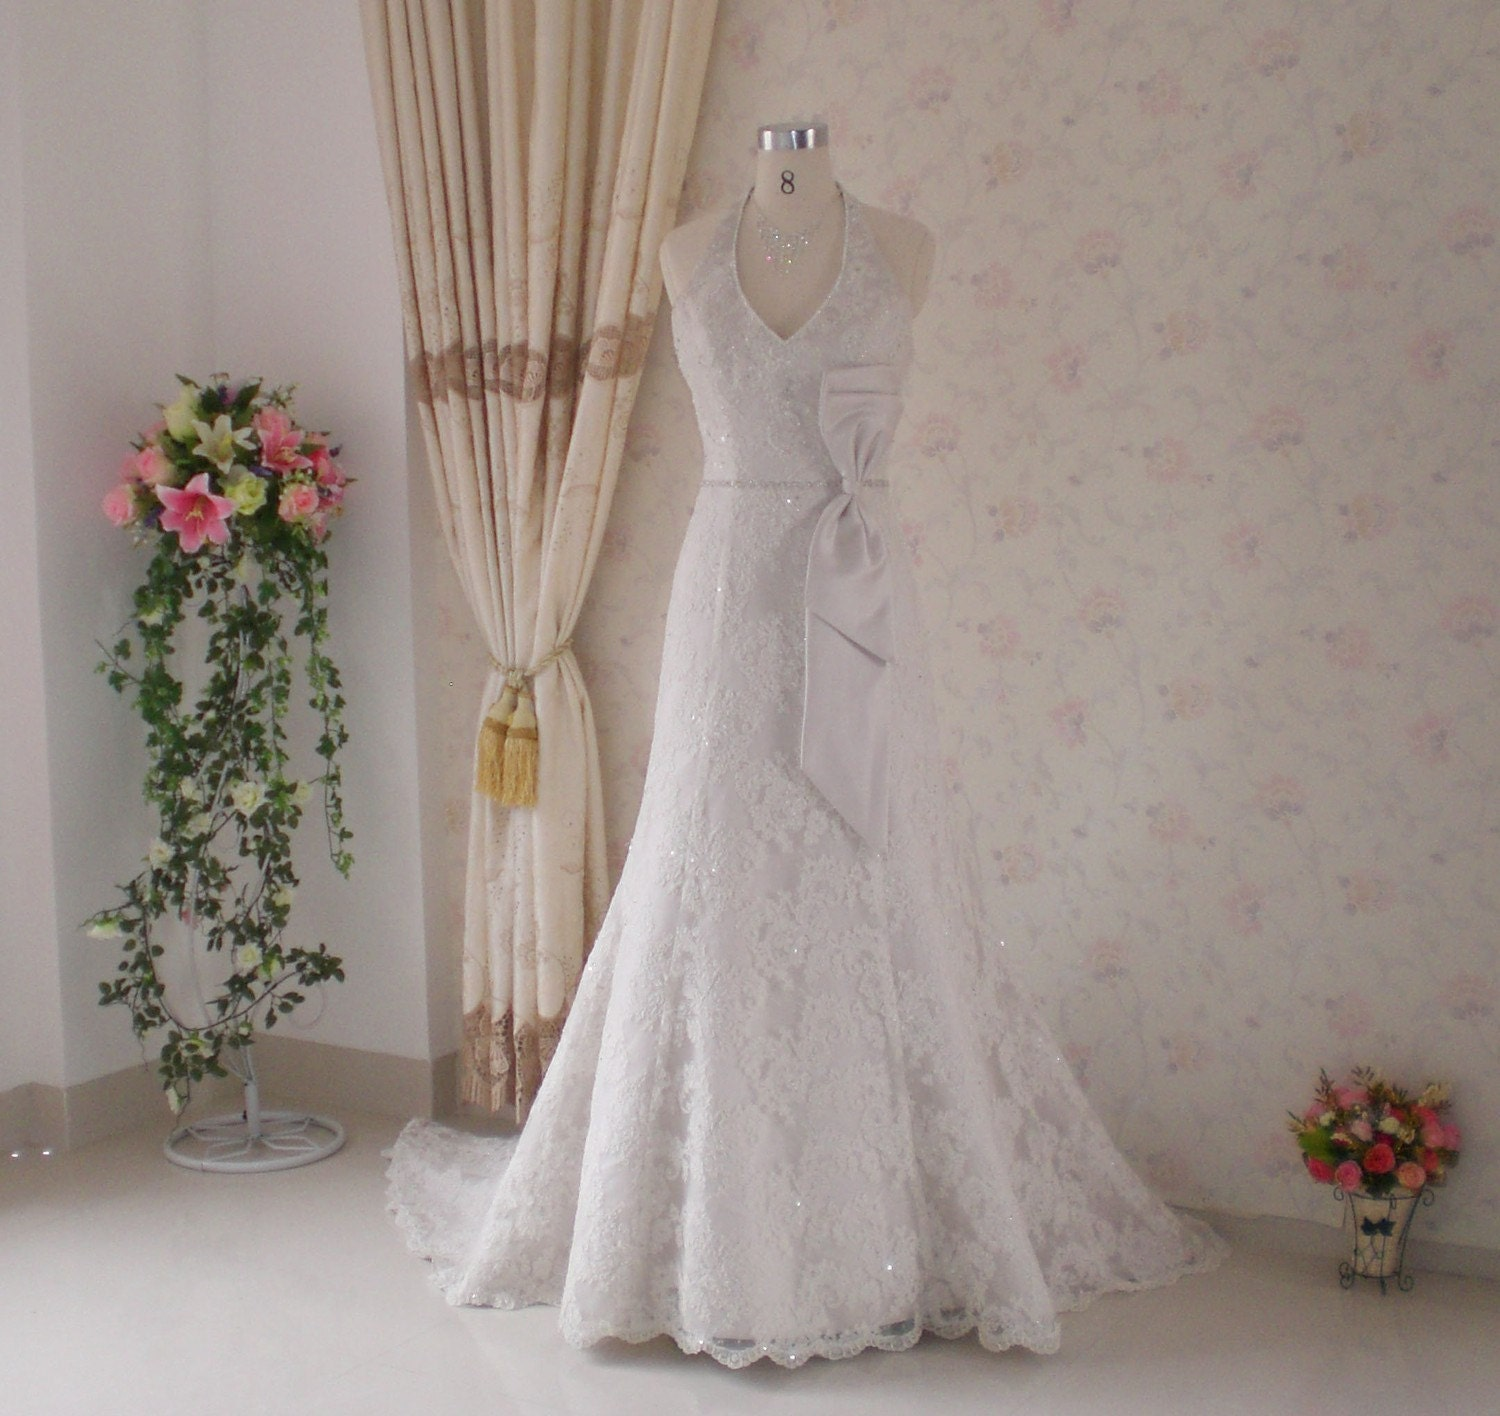 Trumpet Style Wedding Dress with French Lace Halter and Bow